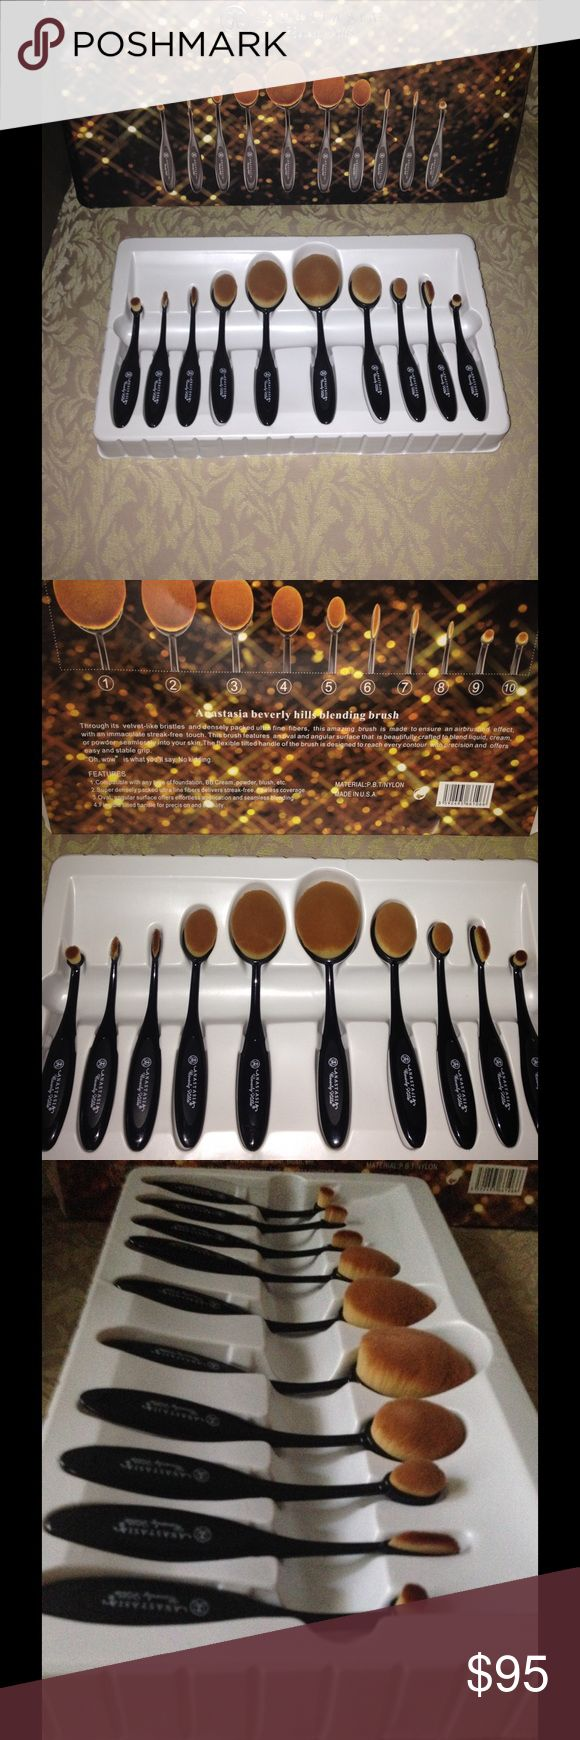 anastasia brush kit. anastasia beverly hills 10 piece oval brush set piece\u2026 | m a k e u p pinterest hills, and kit